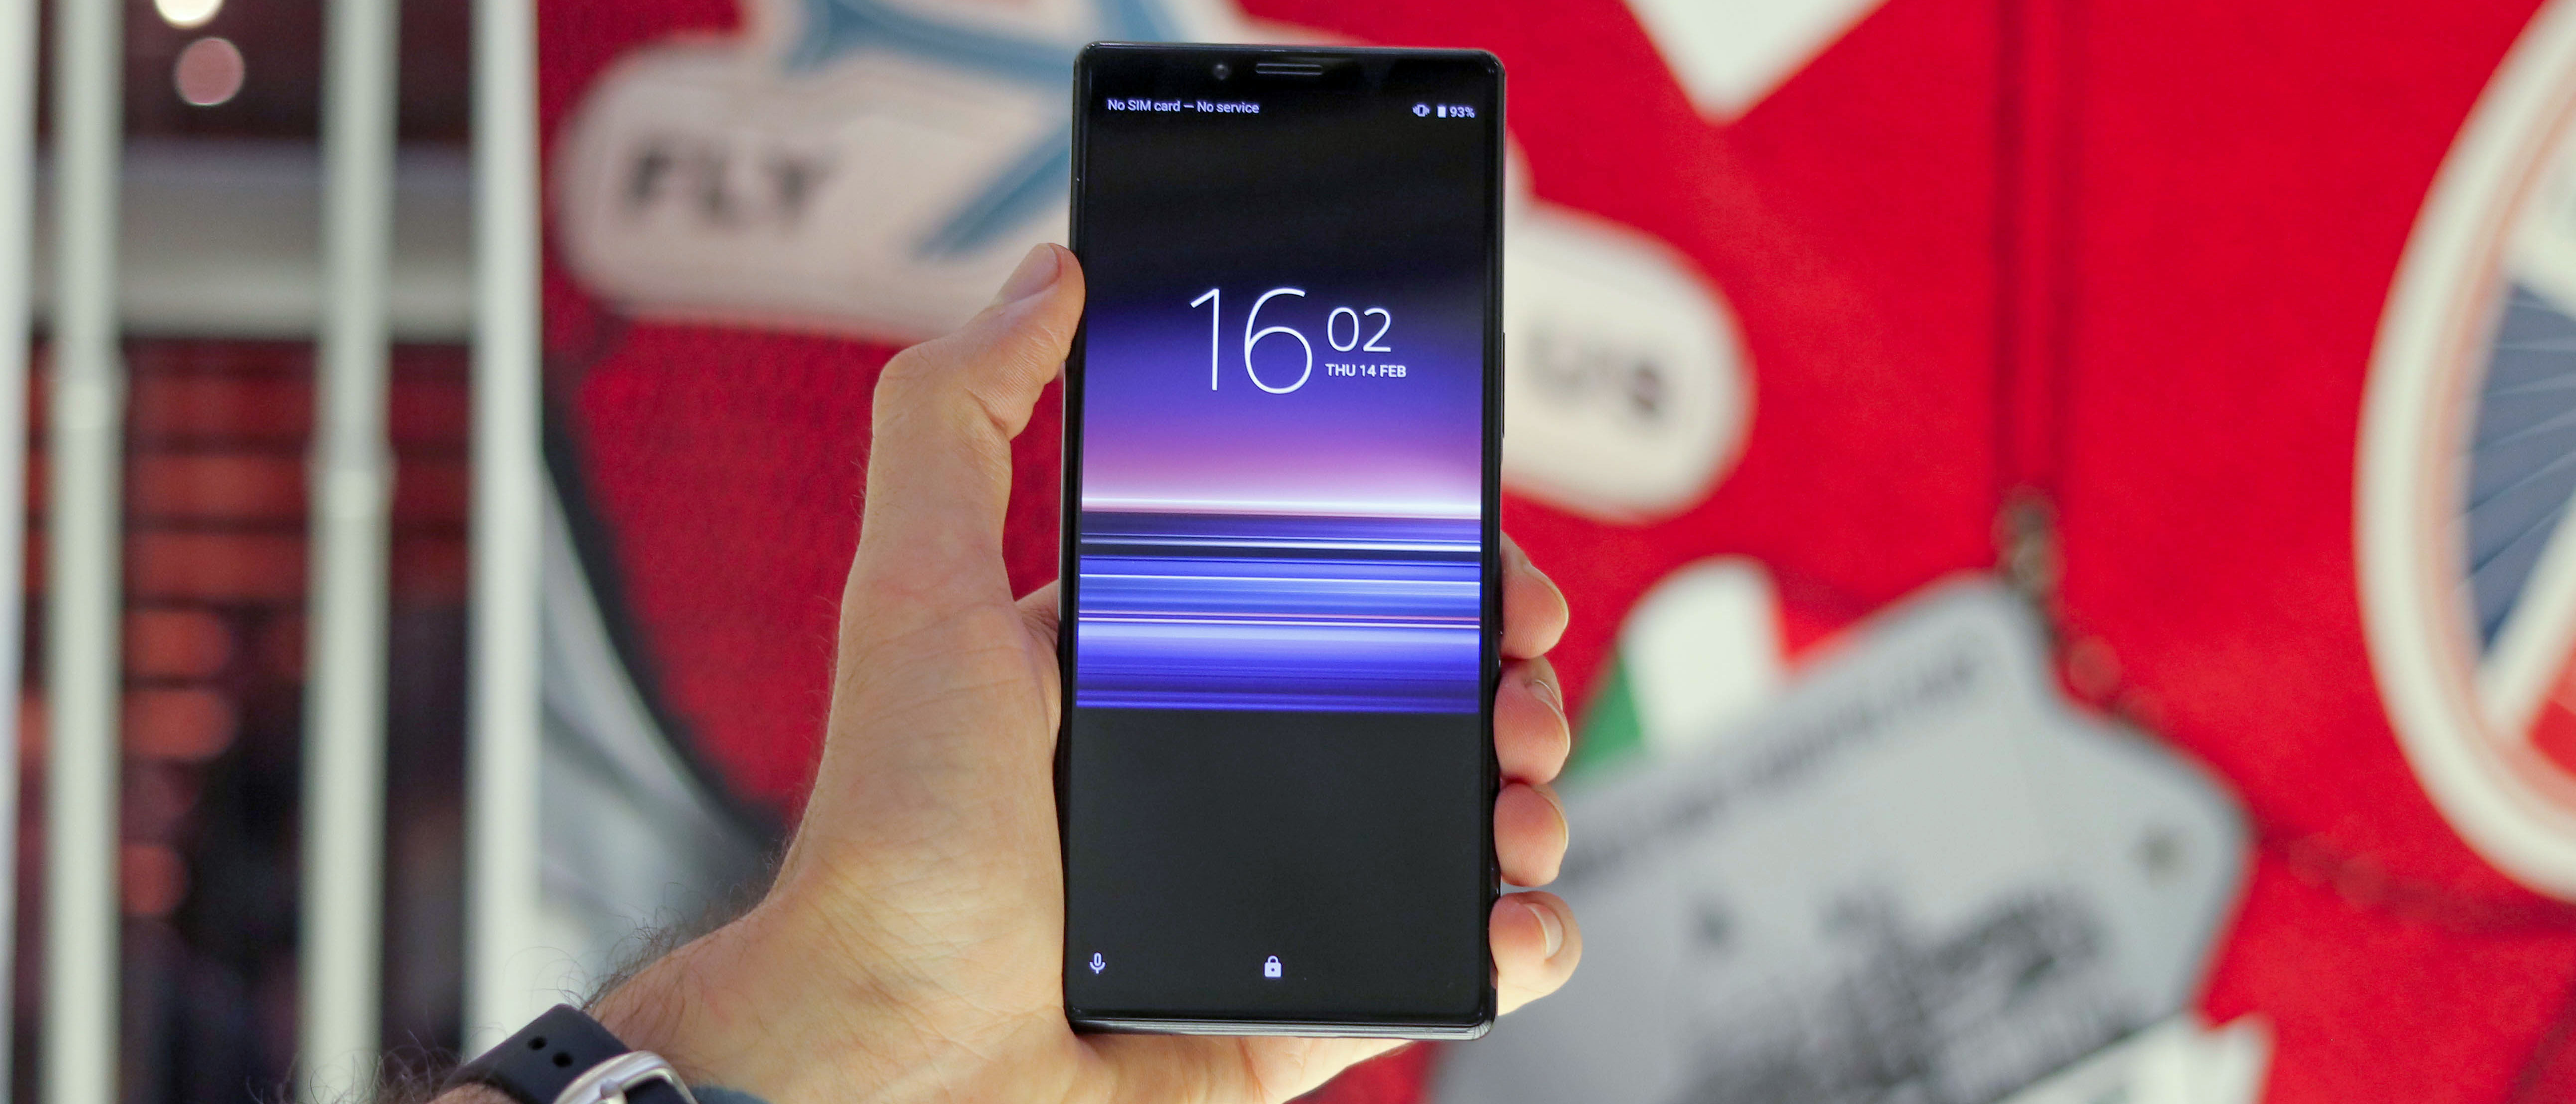 Sony Xperia 1 and Xperia 10 bring cinema-like ratio screens for your Netflix binges